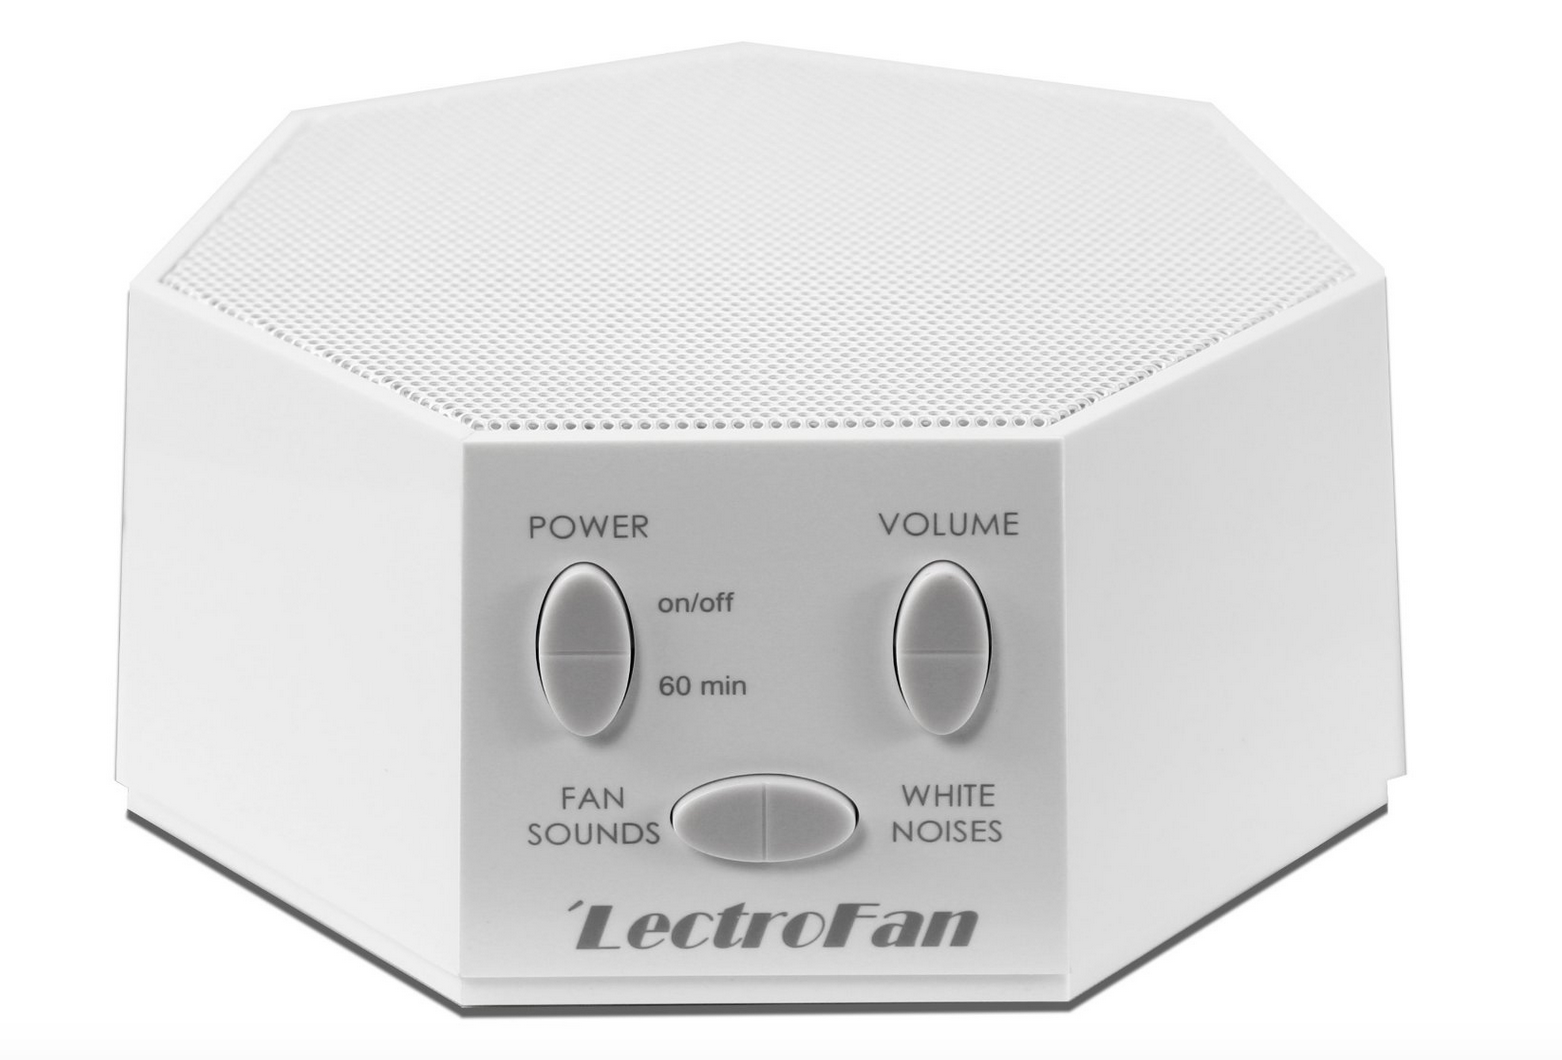 TODAY ONLY! Highly Rated White Noise Machine Only $39.99 Shipped (Reg. $64.95!)